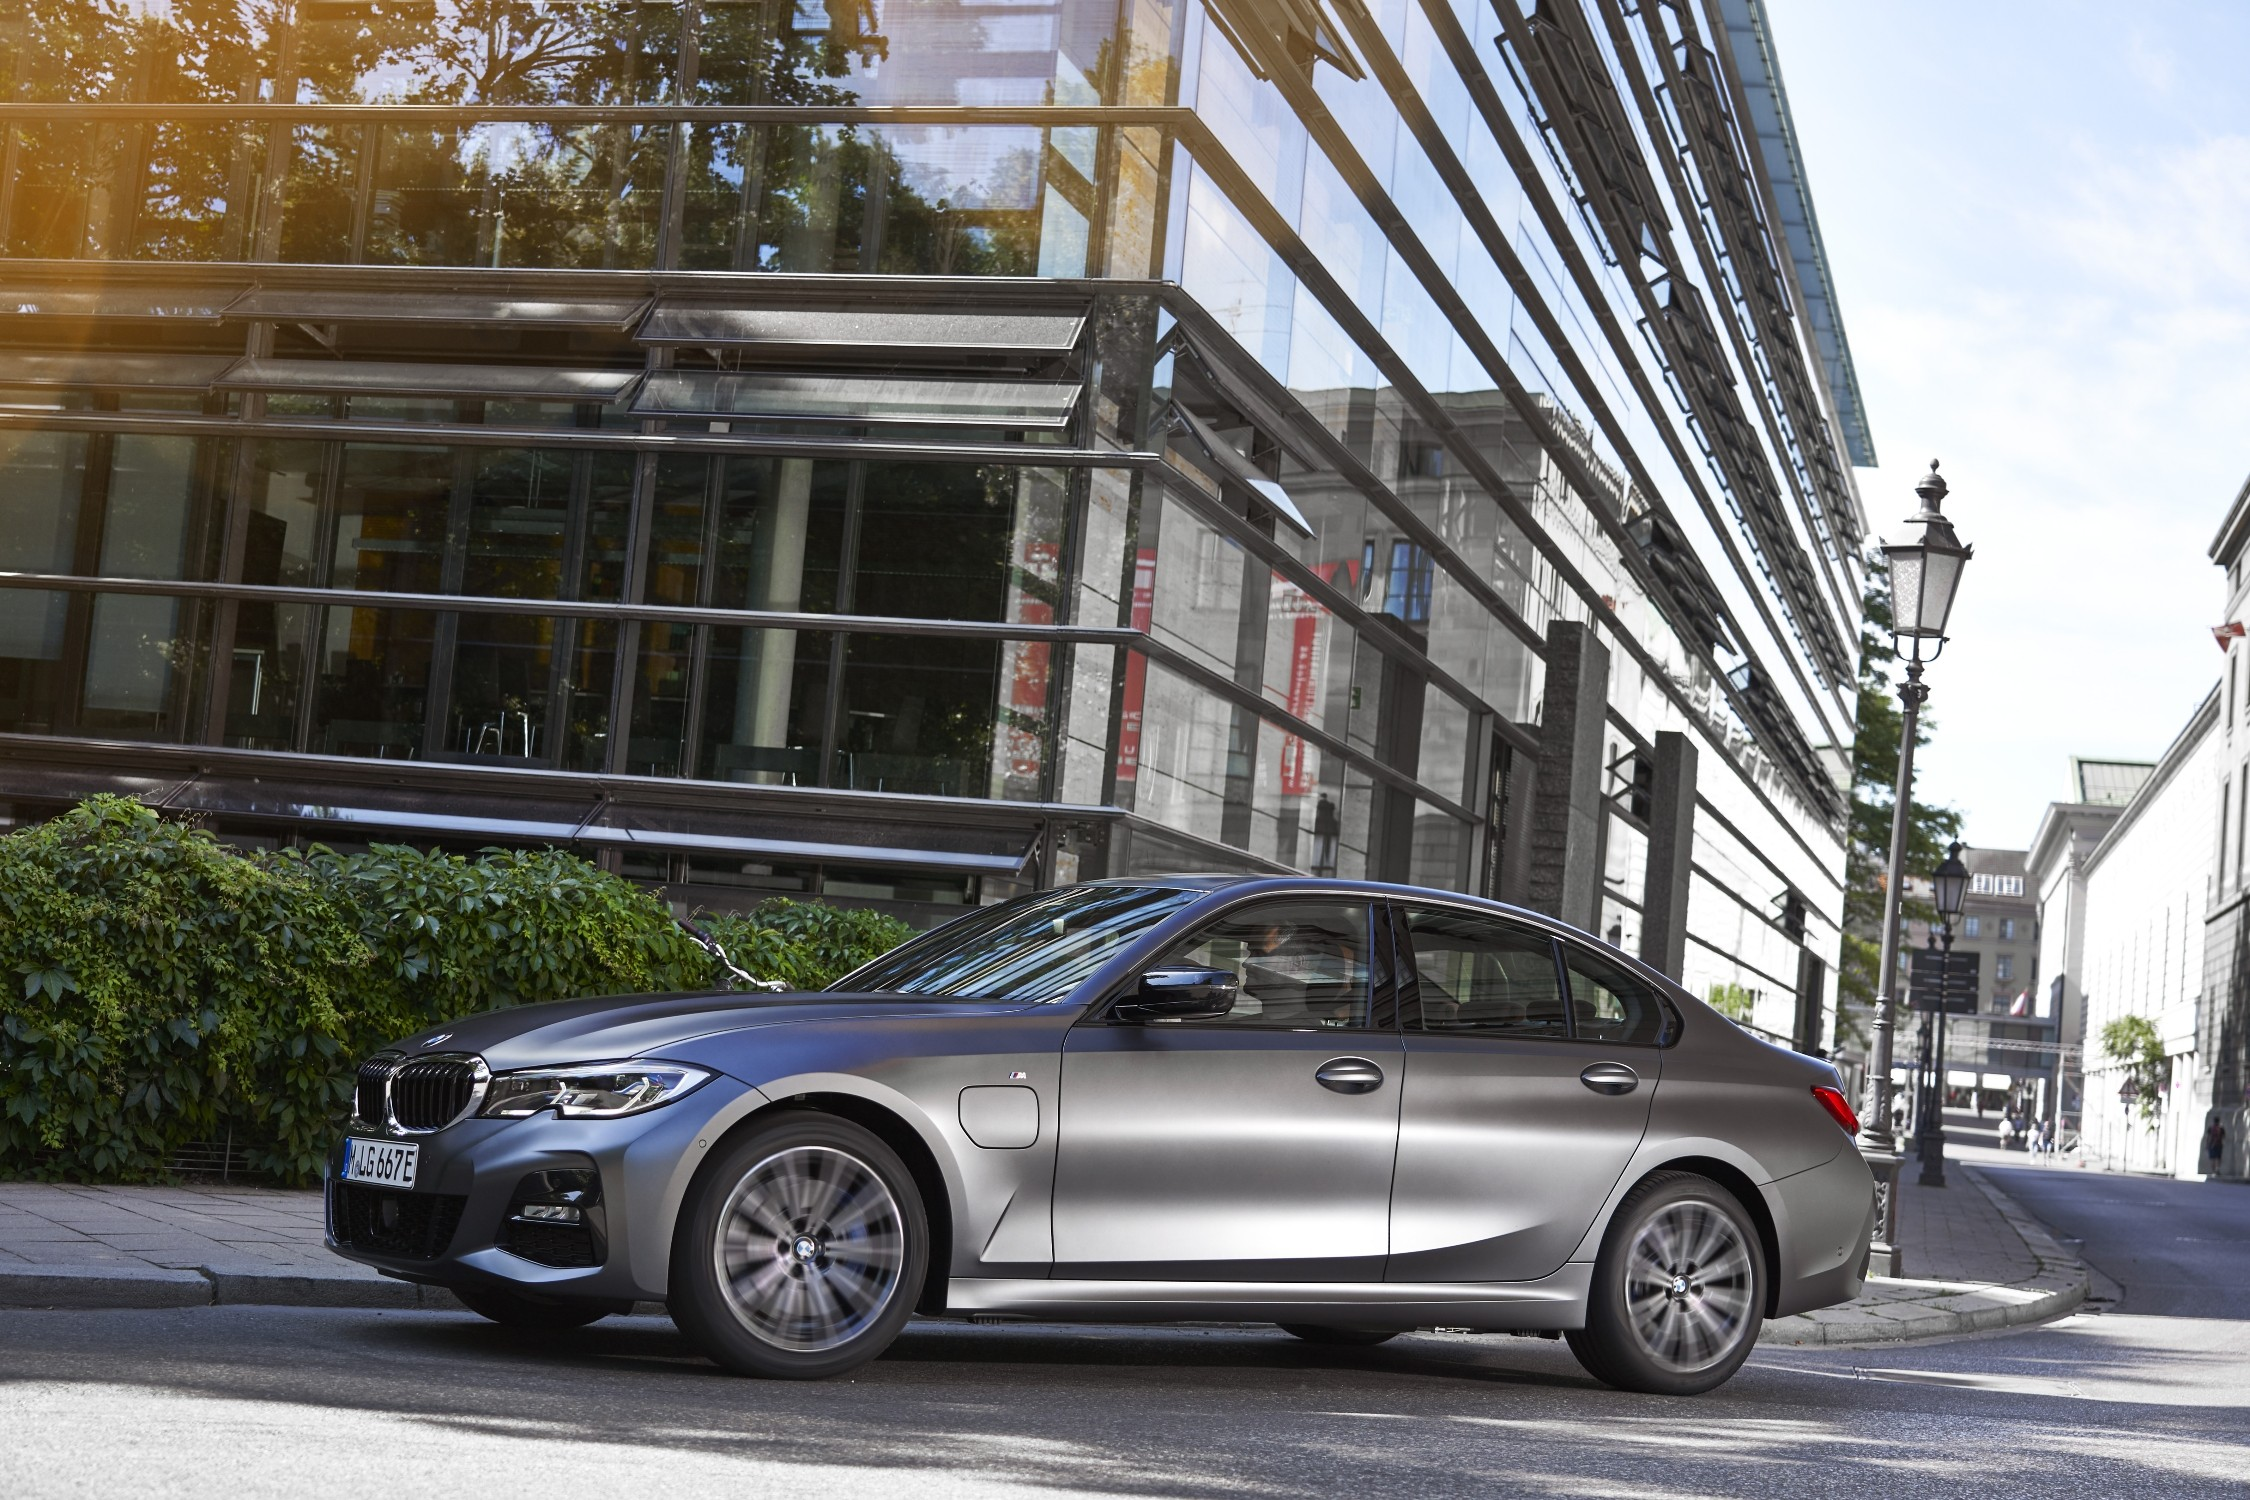 New entry-level models with plug-in hybrid drive for the BMW 3 Series and BMW 5 Series Brandspurng